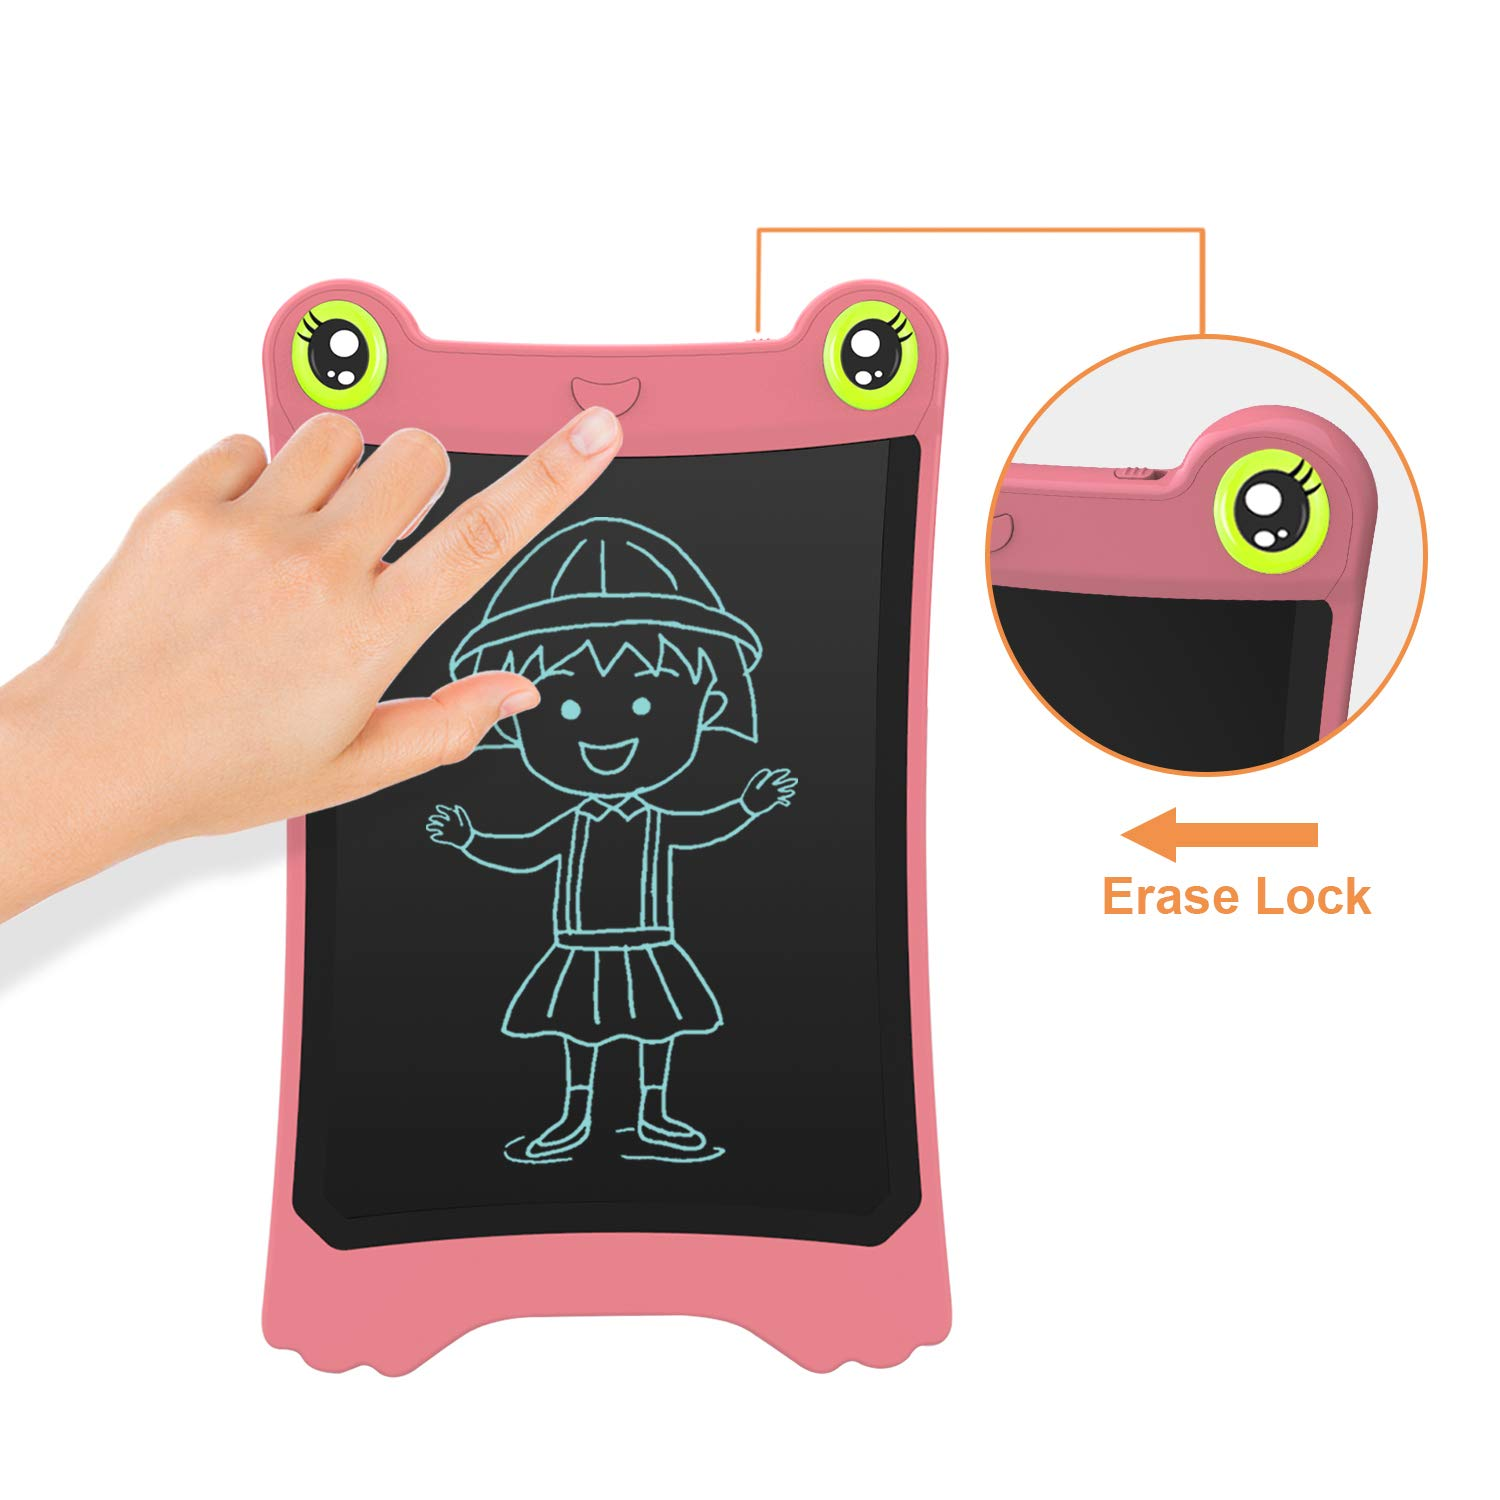 NEWYES 8.5 Inch LCD Writing Tablet Updated Frog Pad Children Electronic Doodle Board Jot Digital E-Writer Kids Scribble Toy with Lock Function Pink by NEWYES (Image #5)